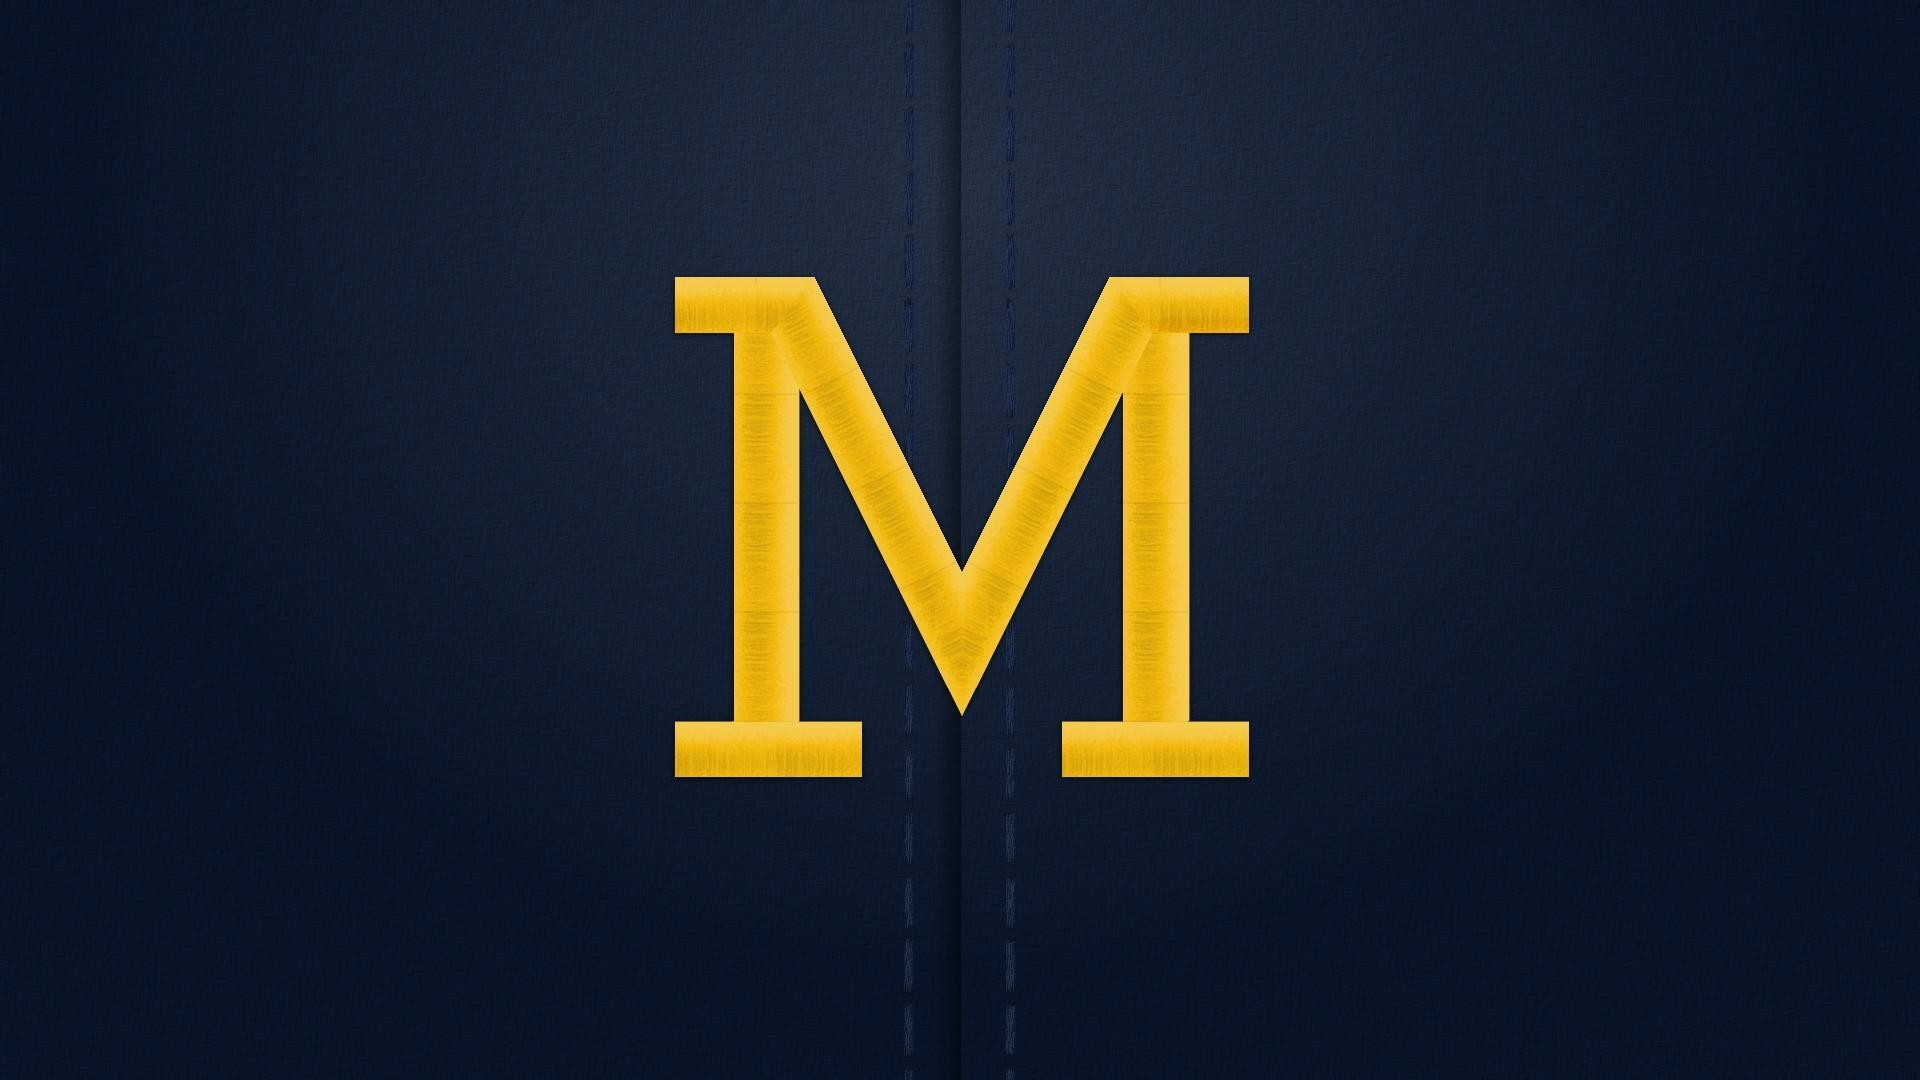 University of Michigan HD Wallpaper 76 images 1920x1080